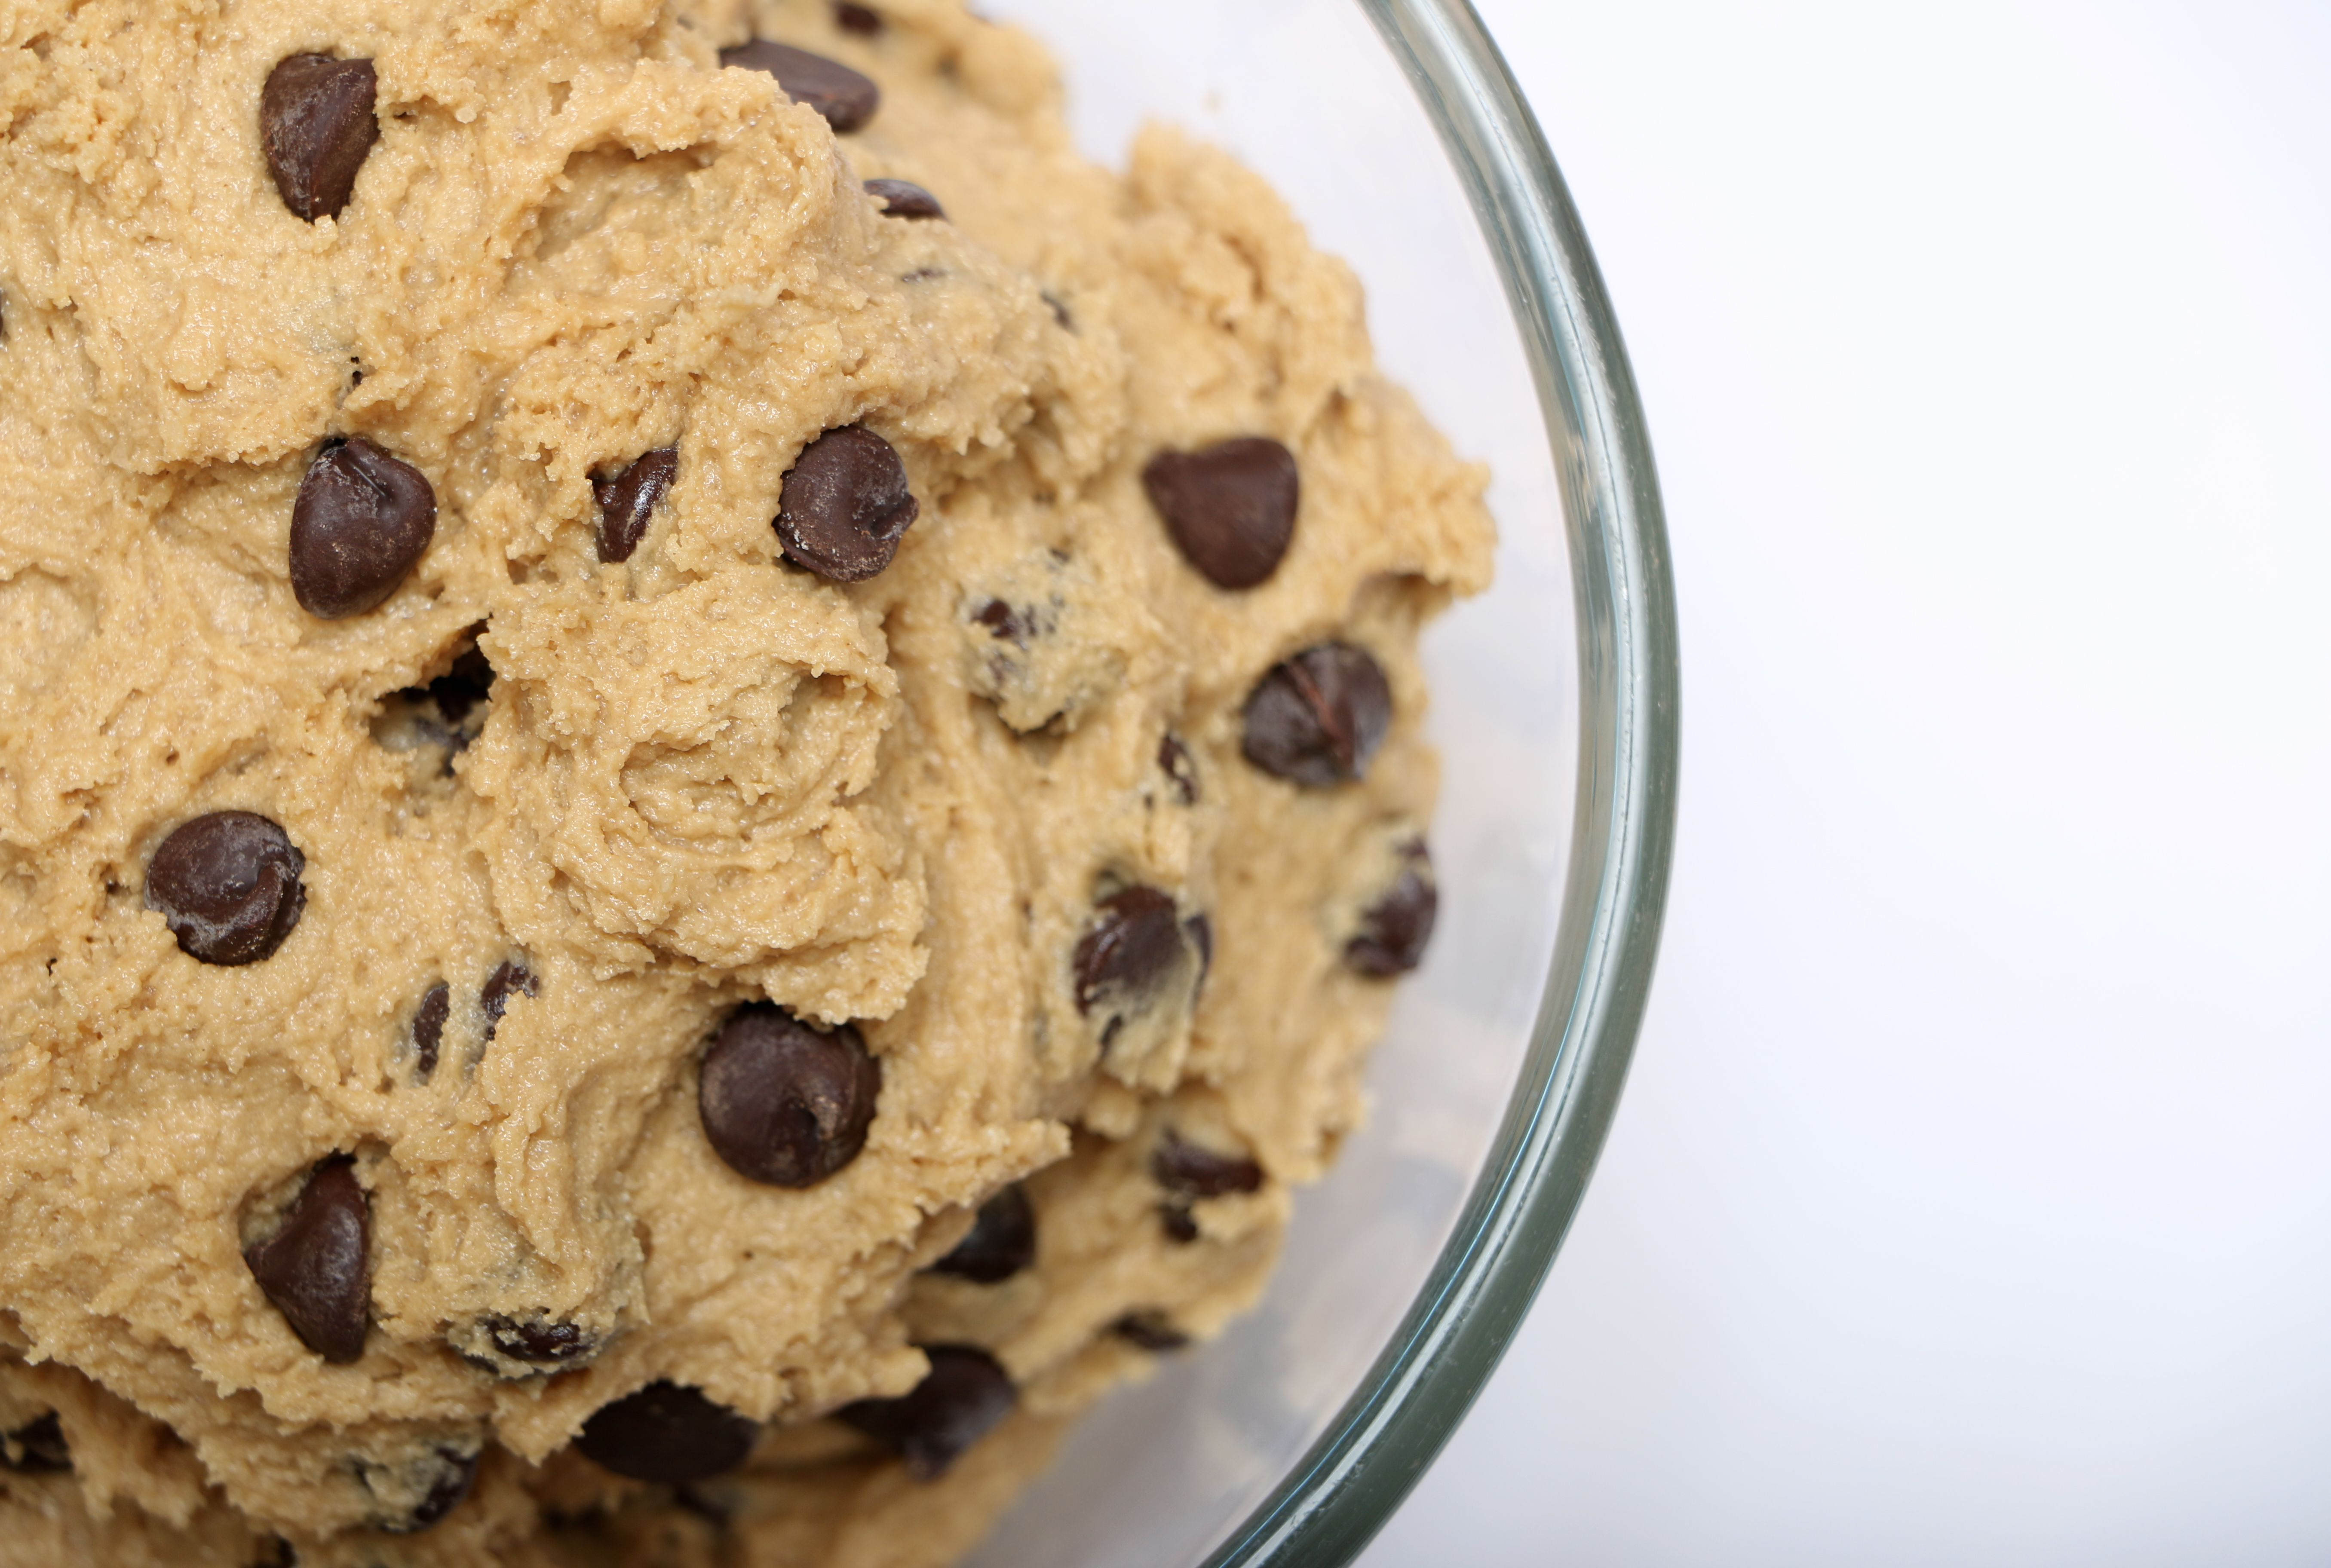 Finally Nestle Toll House Releases Line Of Edible Cookie Doughs Mental Floss